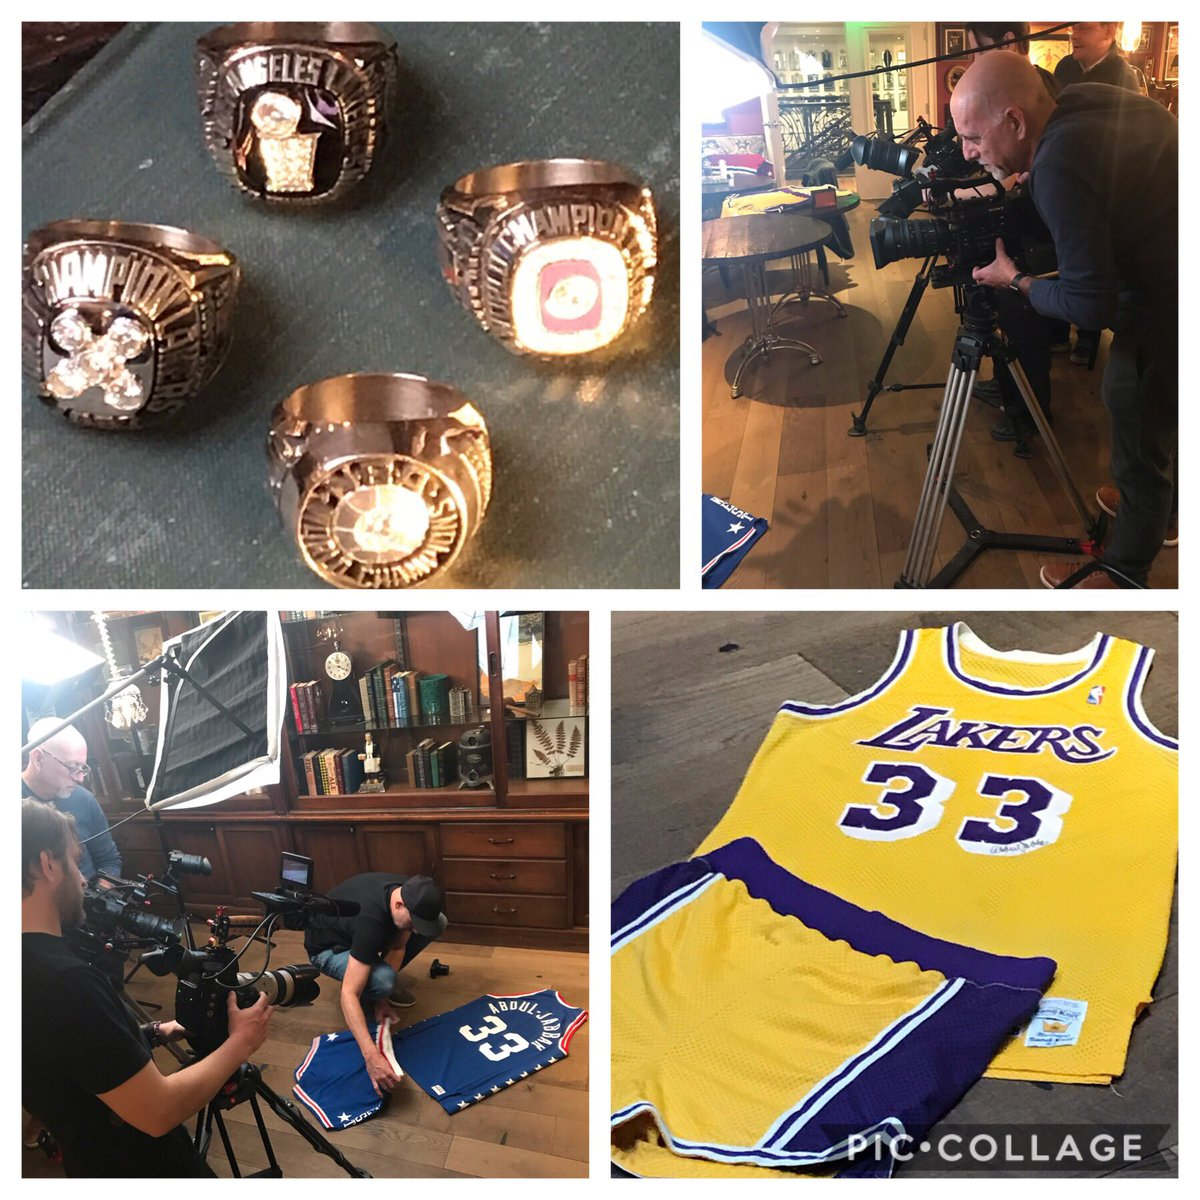 In Charlotte for NBA All-Star Weekend with @kaj33 the GOAT doing a photo shoot with some of his items in our upcoming auction @GoldinAuctions! #NBAAllStarWeekend #NBATwitter